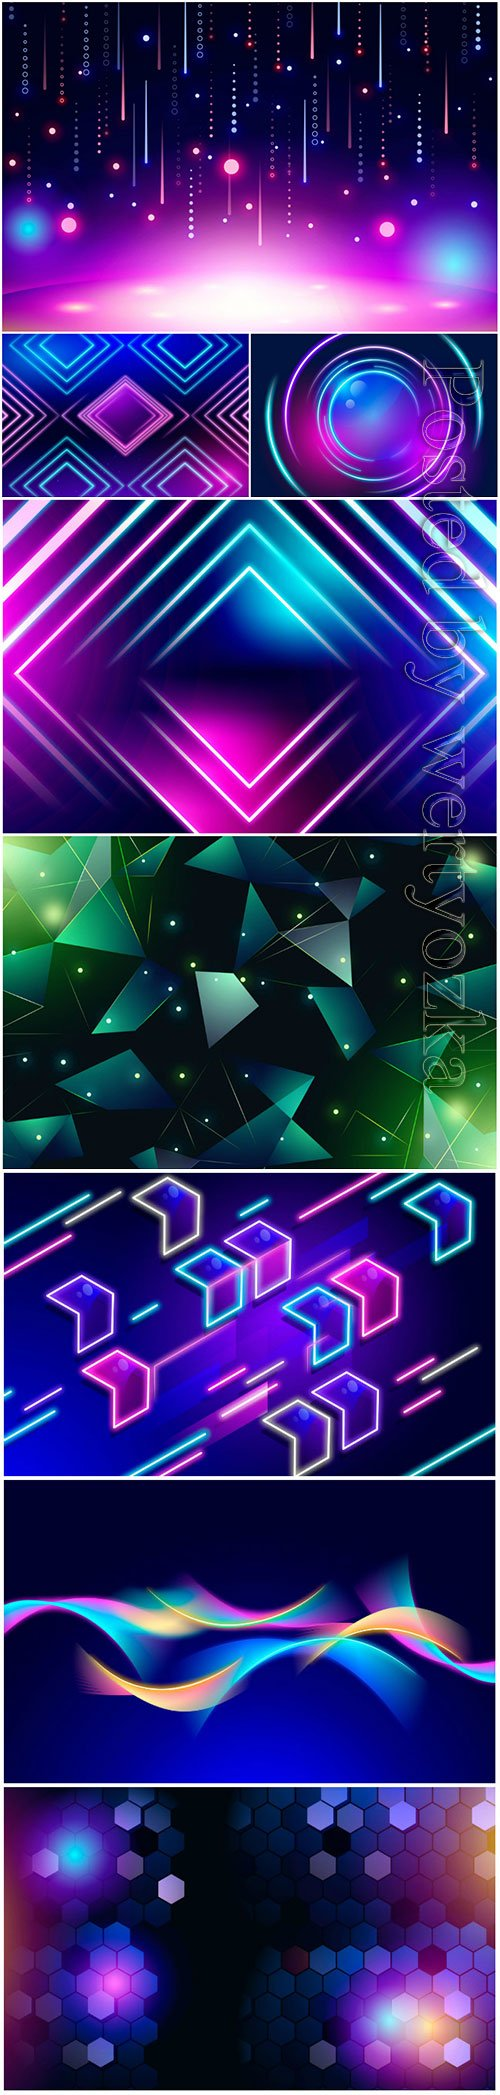 Neon abstract background vector set